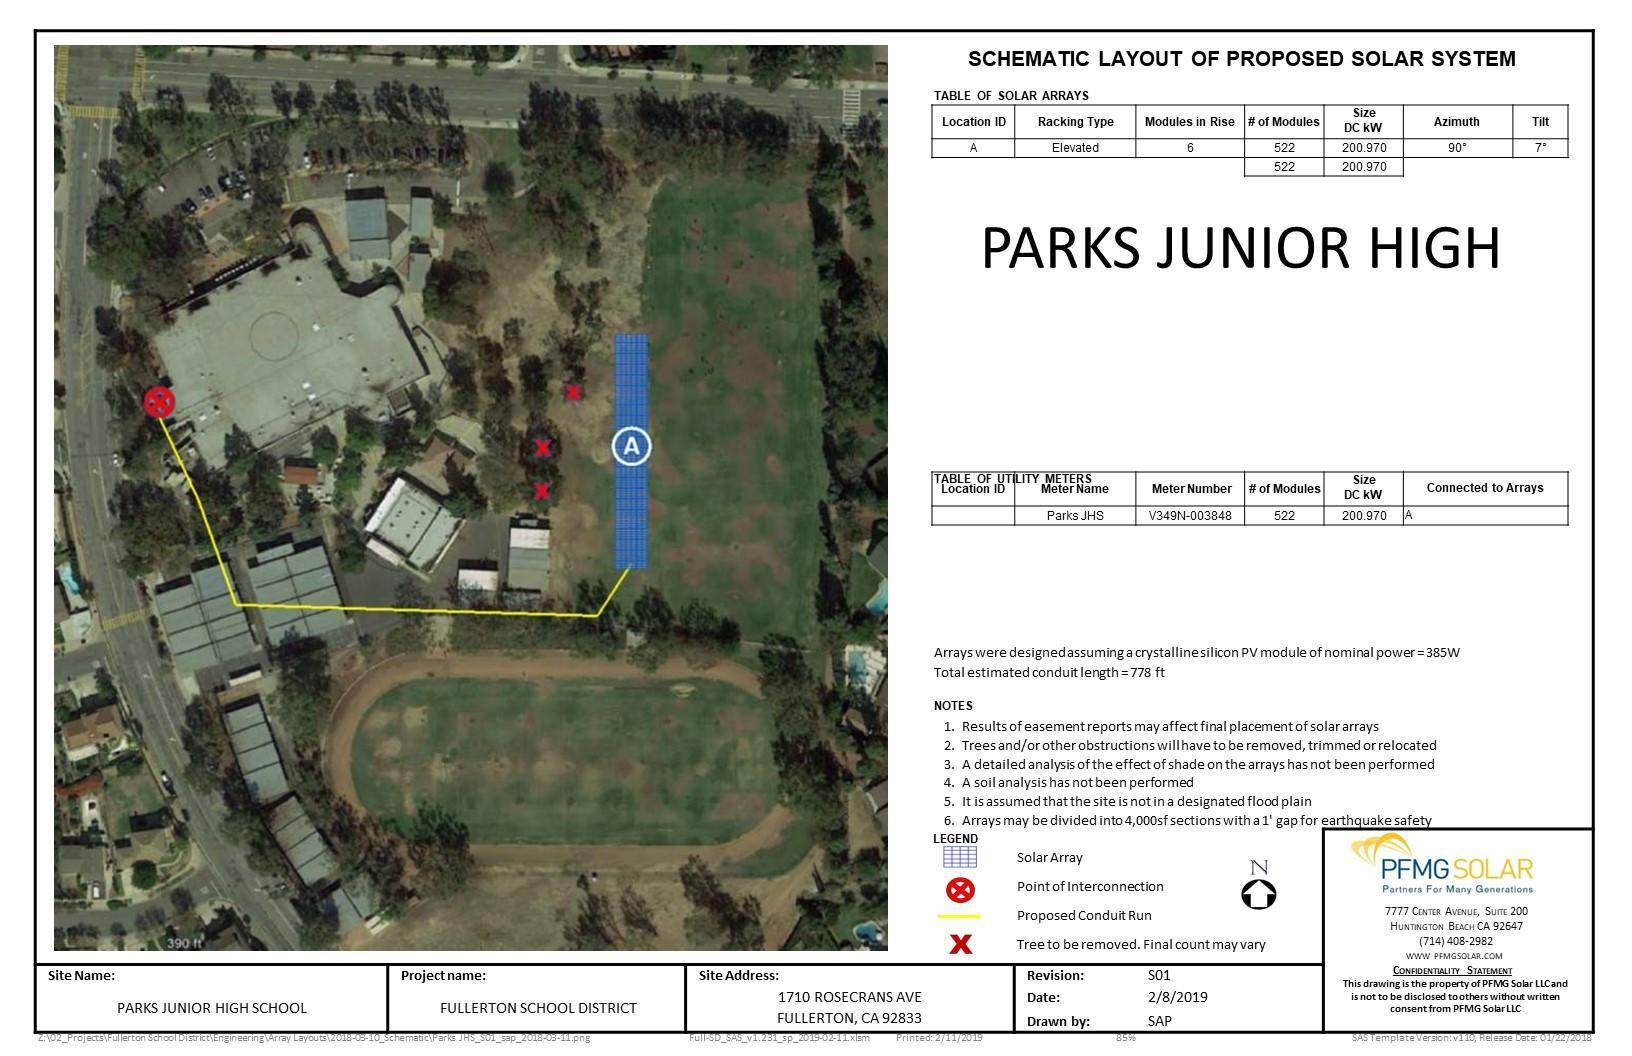 Parks Junior High Schematic Layout of Proposed Solar System